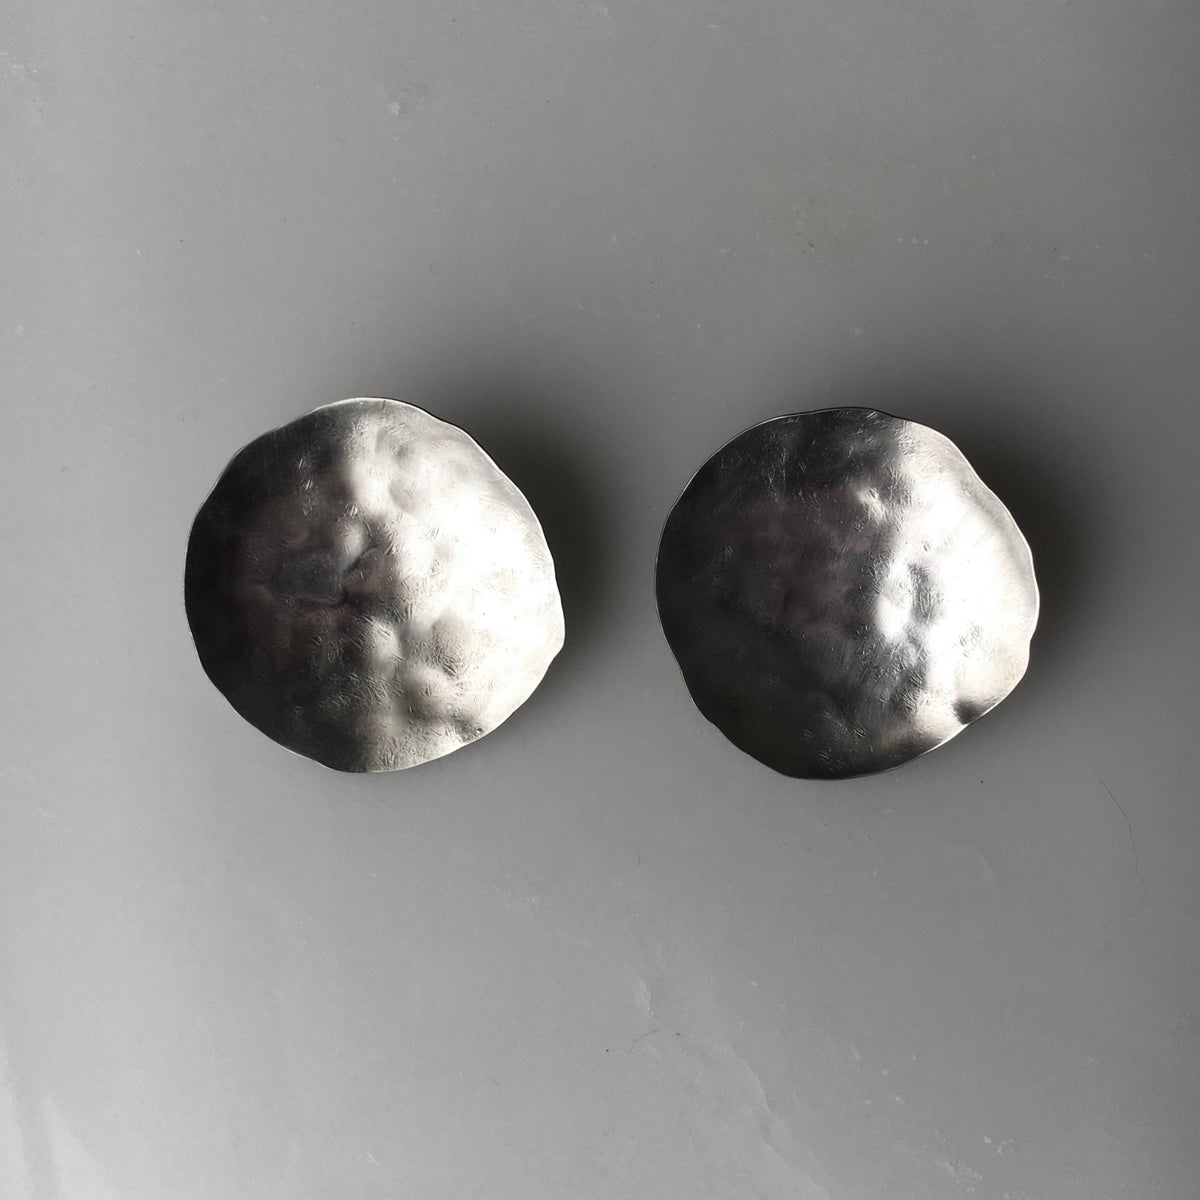 Image of luna earring sterling